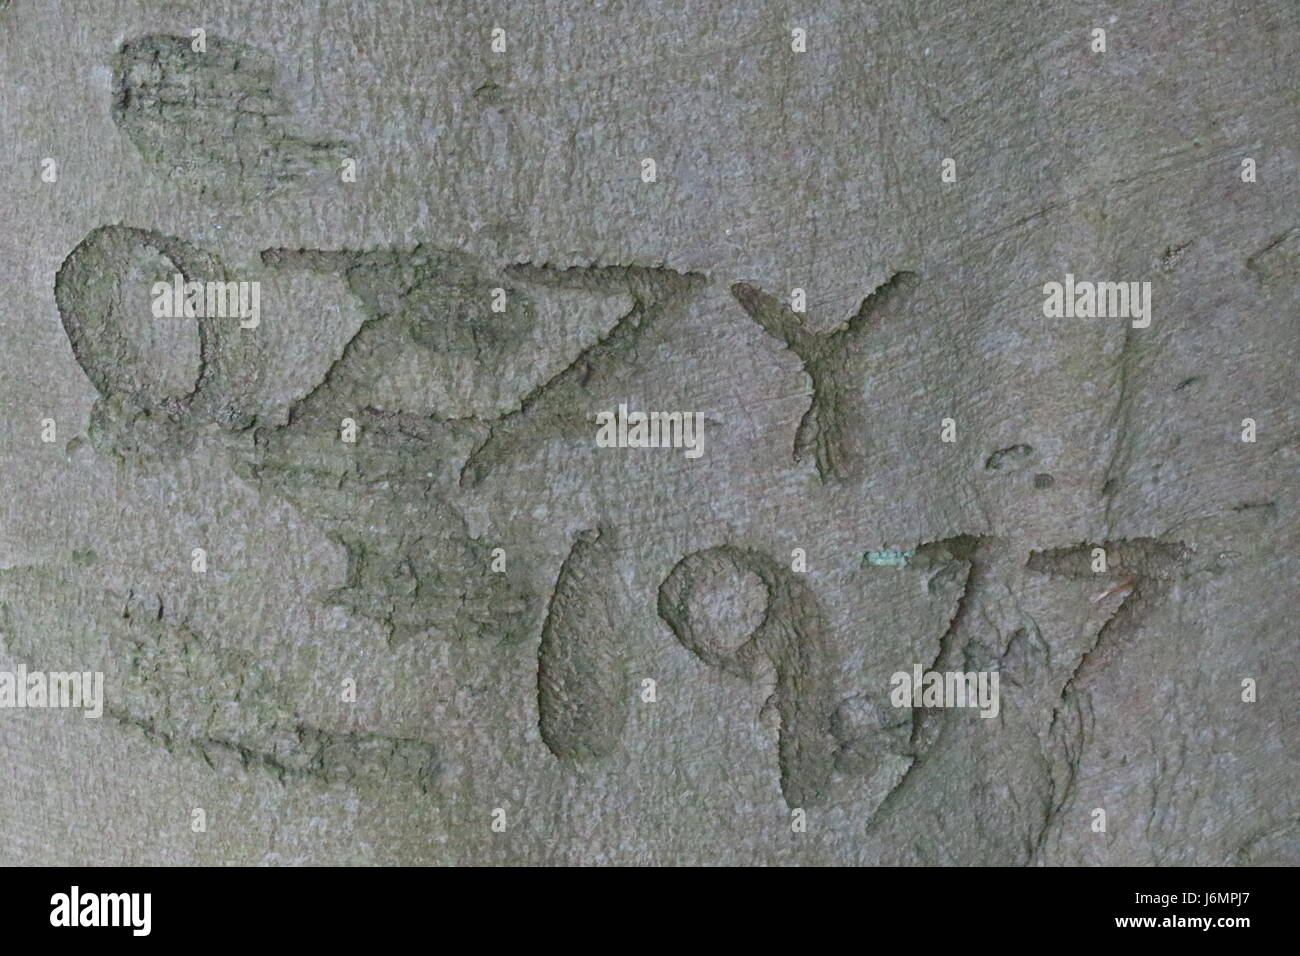 Word Ozzie 1977 carved into a tree trunk - Stock Image